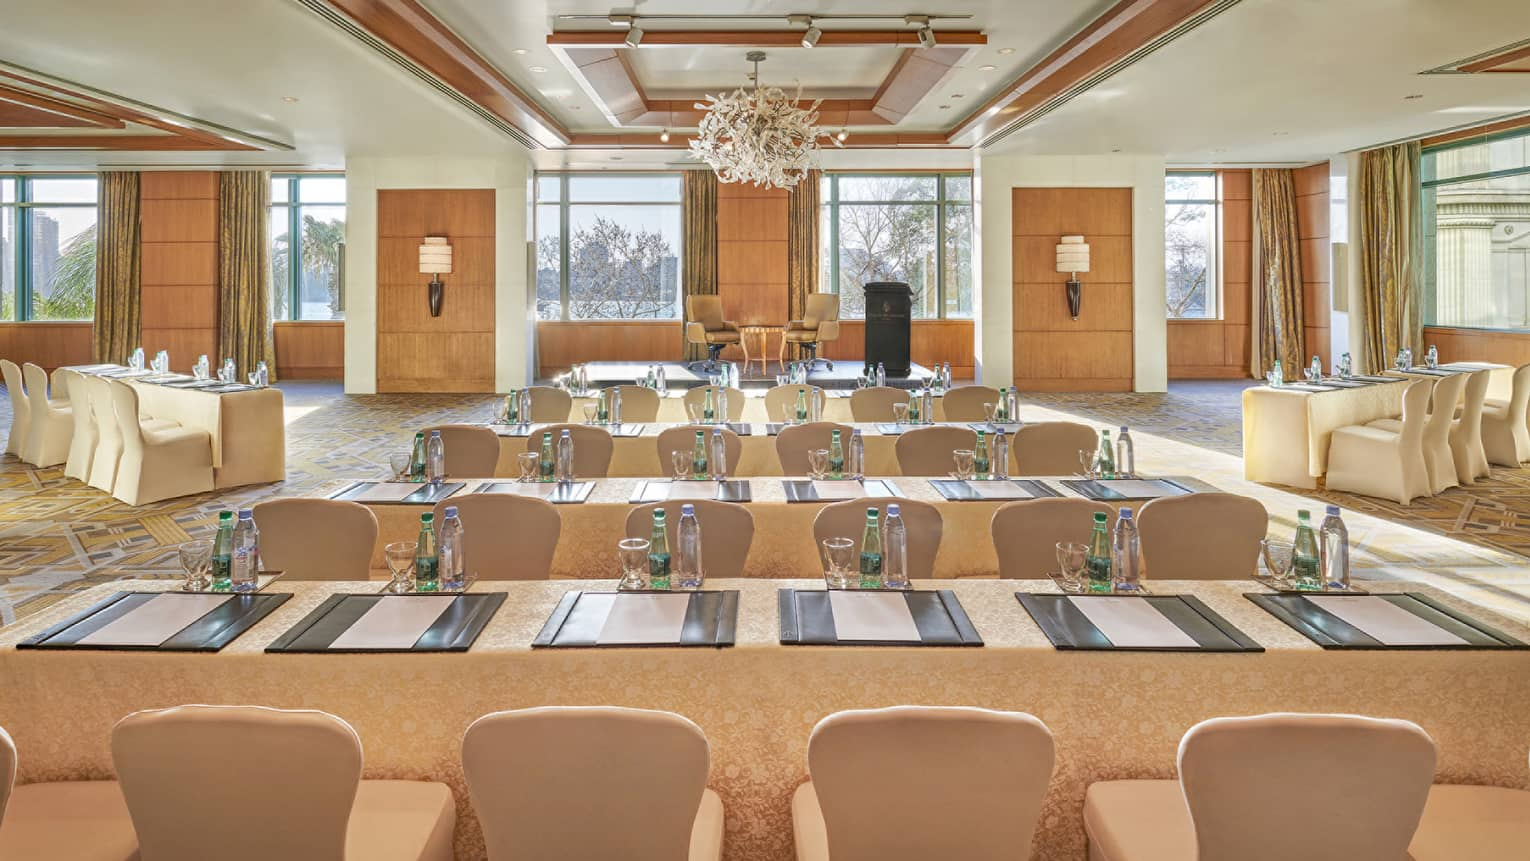 Bright Nile Ballroom with rows of conference meeting tables and chairs